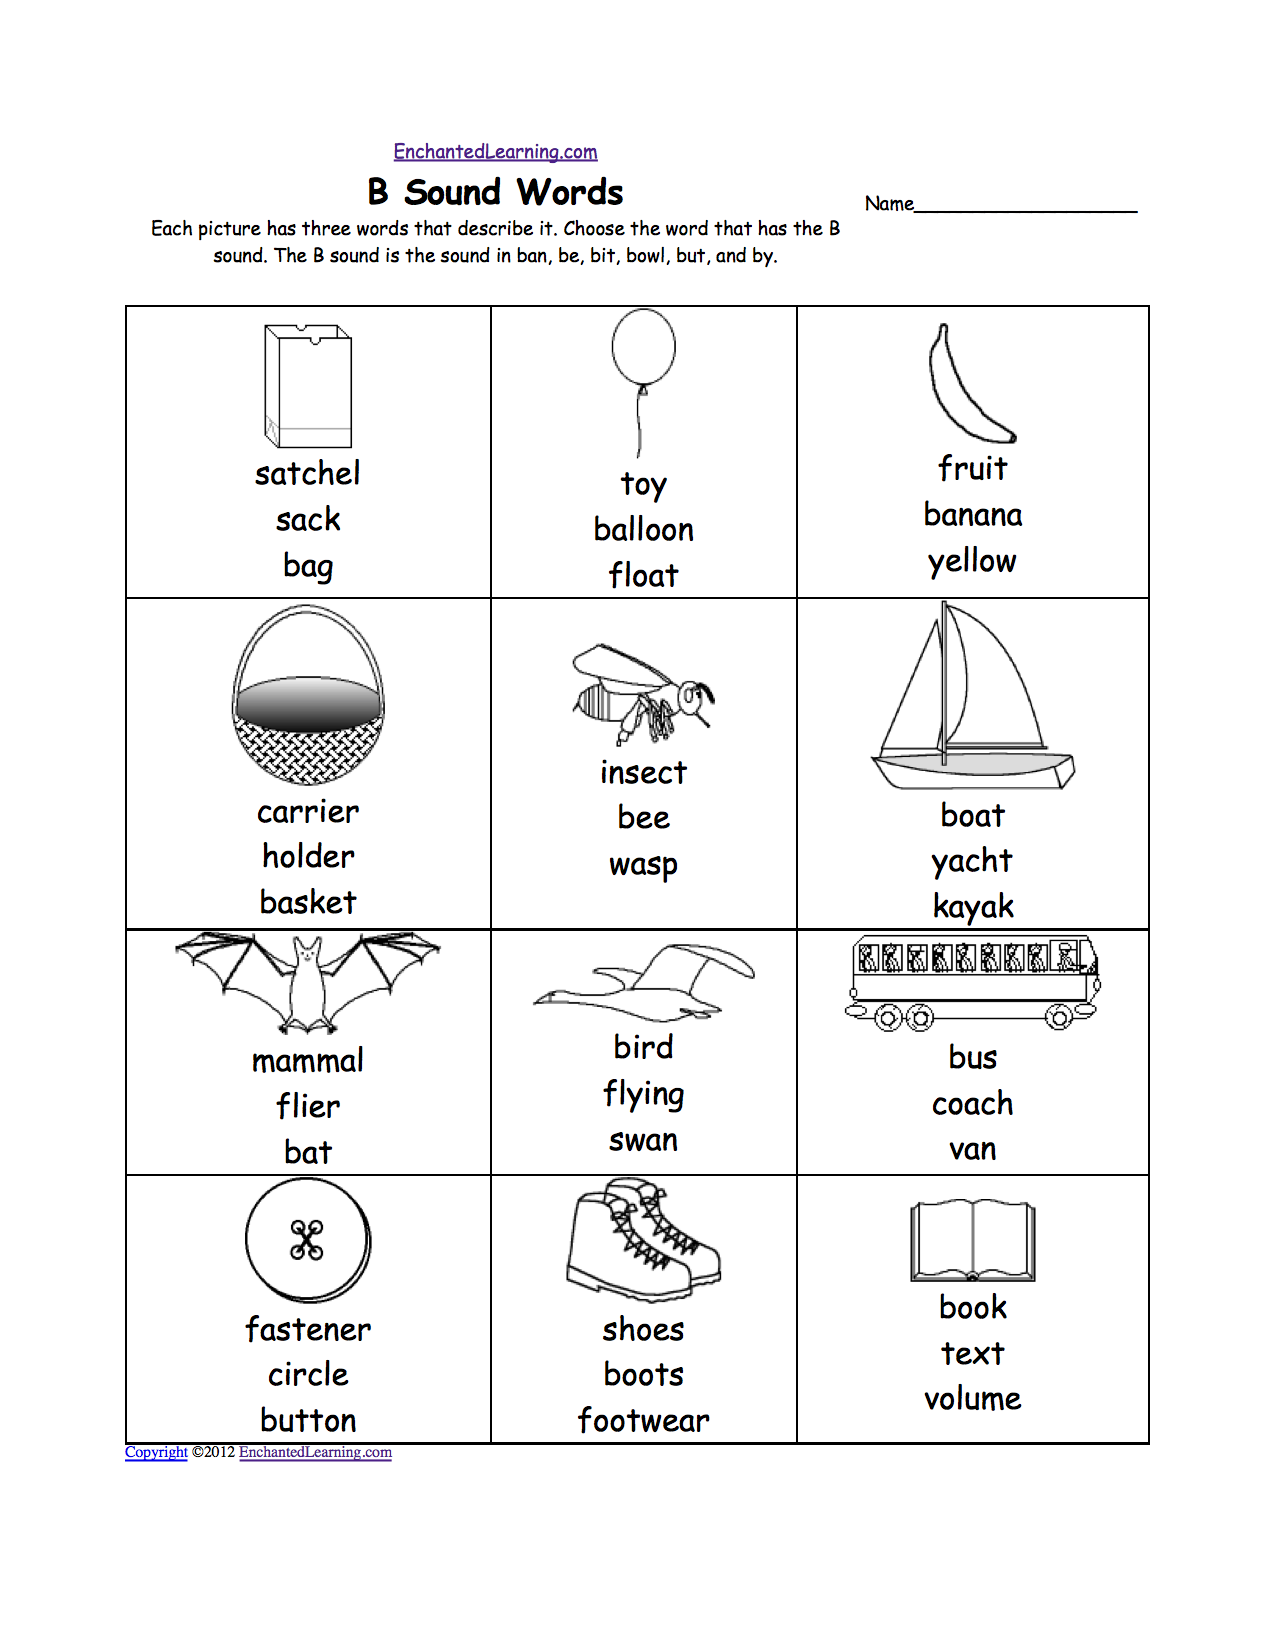 Weirdmailus  Fascinating Phonics Worksheets Multiple Choice Worksheets To Print  With Goodlooking Quotbquot Sound Phonics Worksheet Multiple Choice Each Picture Has Three Words That Describe It Choose The Word That Has A Quotbquot Sound The Quotbquot Sound Is The Sound  With Lovely Personal Hygiene Worksheets For Kindergarten Also Food Chains And Food Webs Worksheet In Addition Probability And Statistics Worksheets With Answers And Word Class Worksheets As Well As Naming Binary Ionic Compounds Worksheet Answers Additionally Exponential Function Practice Worksheets From Enchantedlearningcom With Weirdmailus  Goodlooking Phonics Worksheets Multiple Choice Worksheets To Print  With Lovely Quotbquot Sound Phonics Worksheet Multiple Choice Each Picture Has Three Words That Describe It Choose The Word That Has A Quotbquot Sound The Quotbquot Sound Is The Sound  And Fascinating Personal Hygiene Worksheets For Kindergarten Also Food Chains And Food Webs Worksheet In Addition Probability And Statistics Worksheets With Answers From Enchantedlearningcom